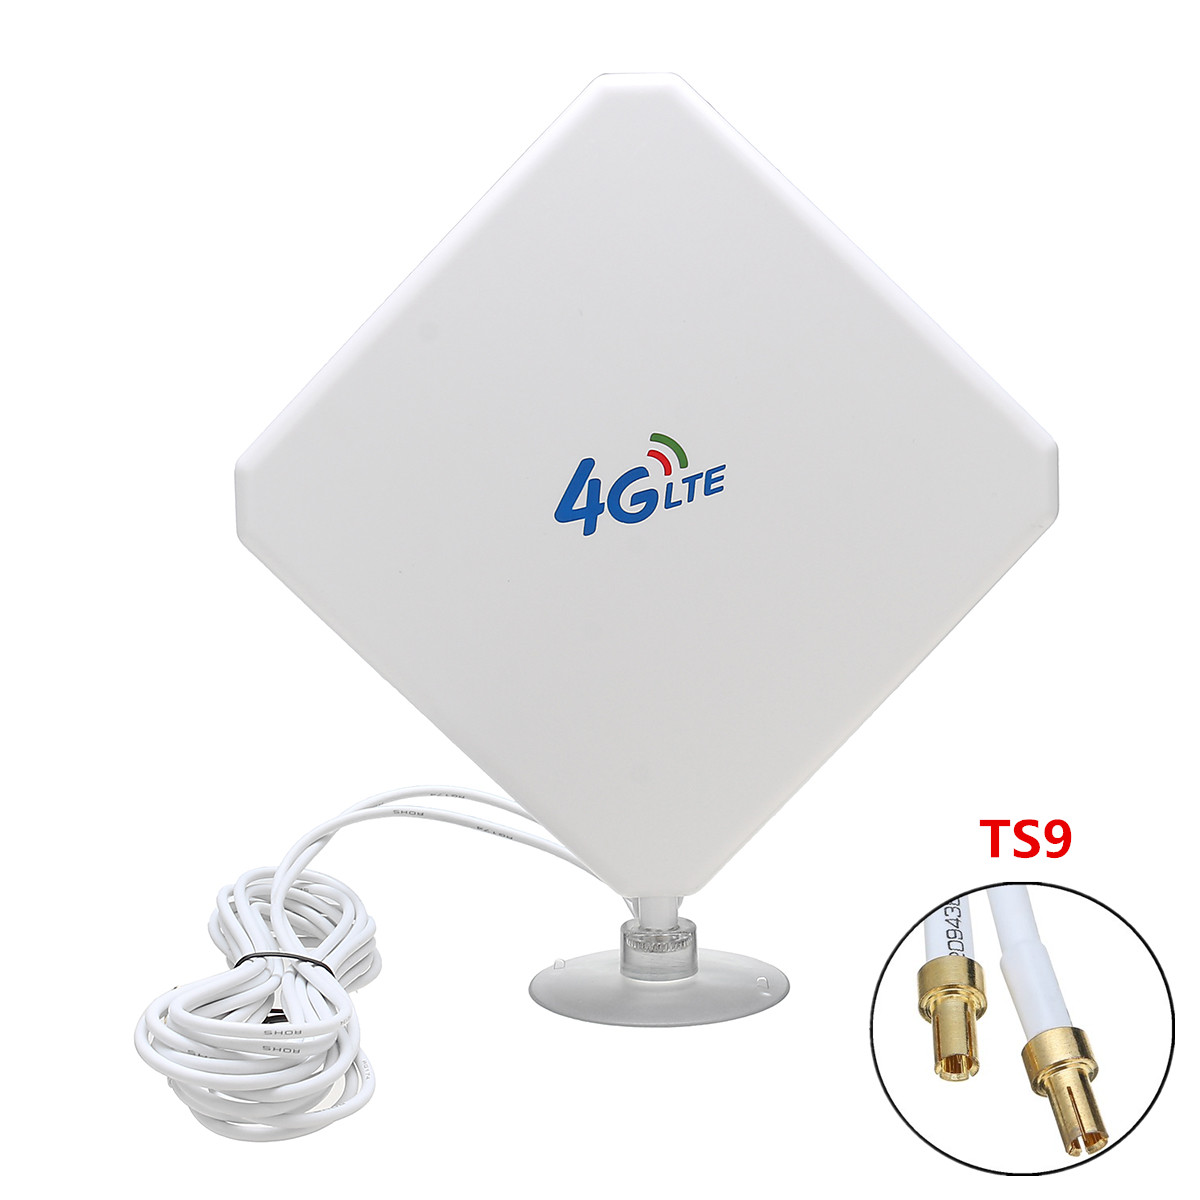 35dBi 4G/LTE Cell Phone Broadband Antenna Signal Booster Repeater Wifi Amplifier Network Expander Routers With Cable TS9 Connect